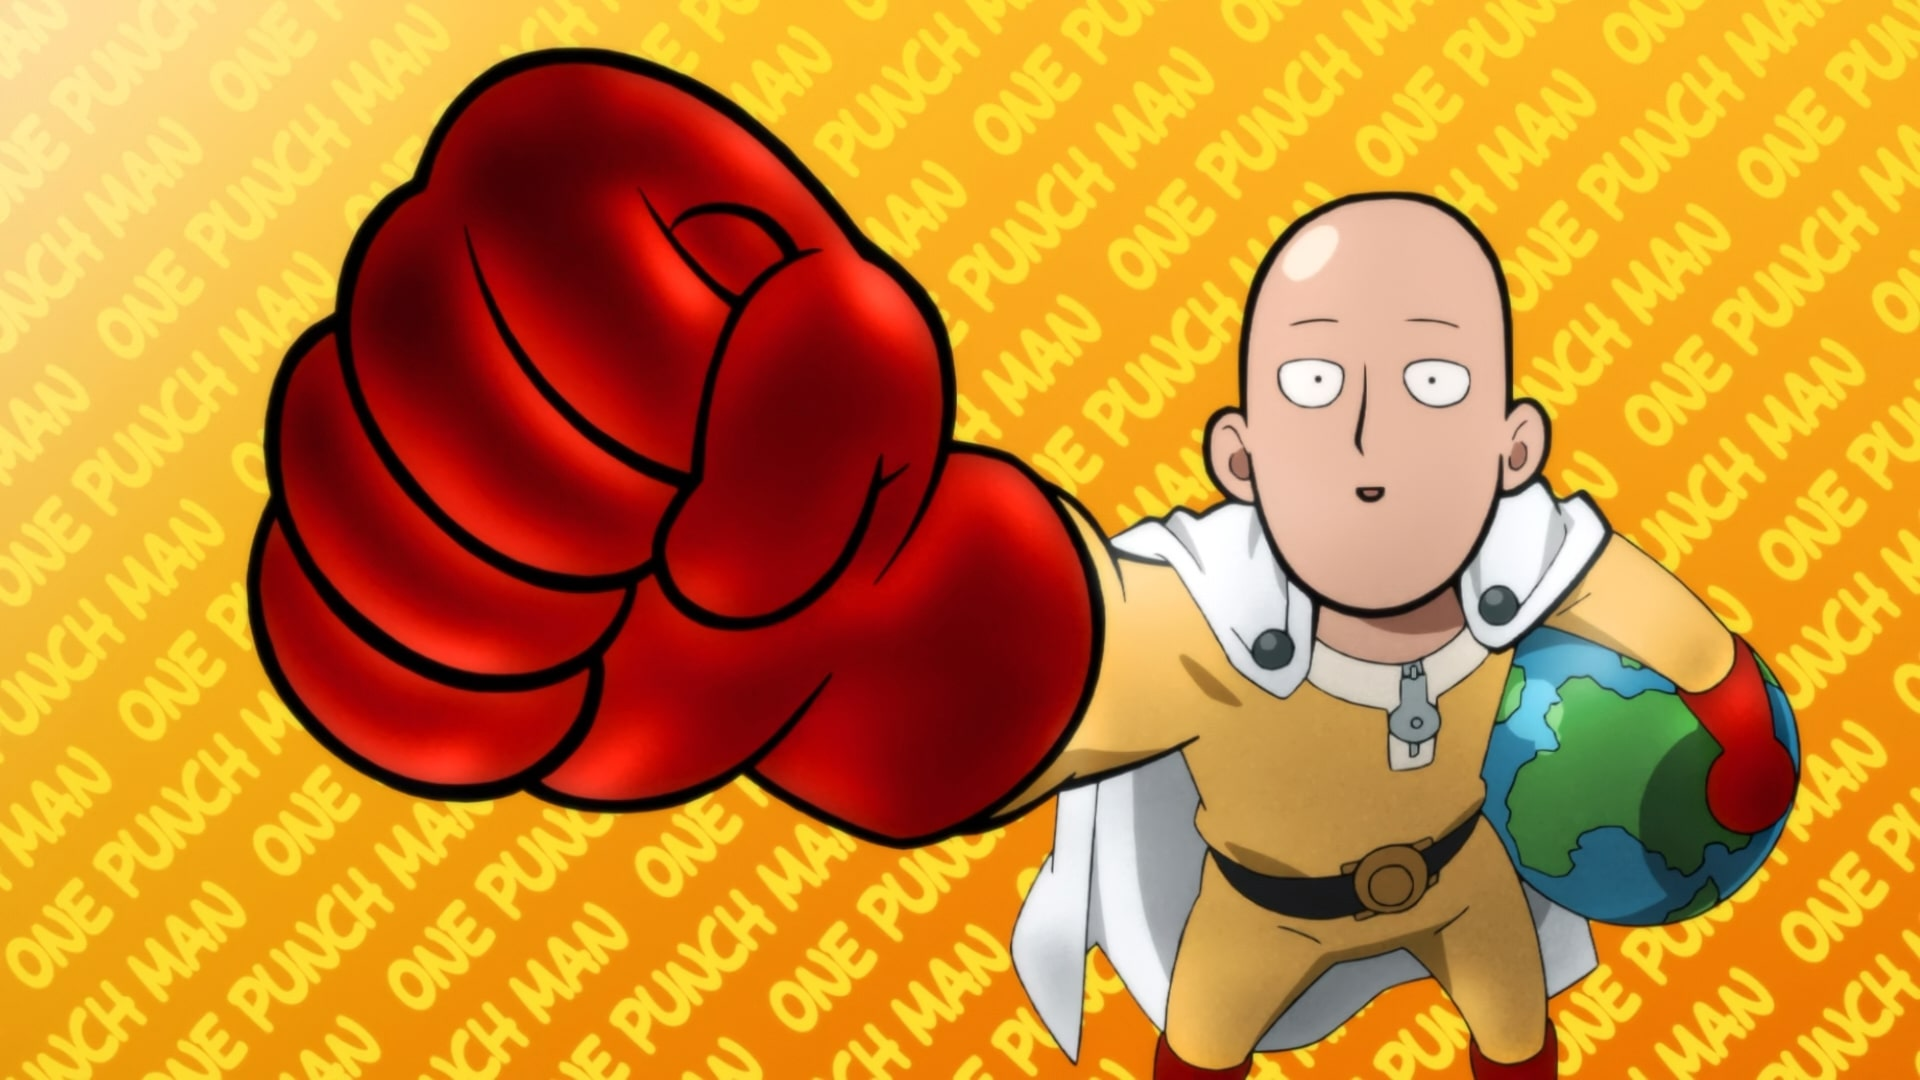 One Punch Man Season 3 Release Date, Plot Total Episodes Count revealed for Third Anime Installment